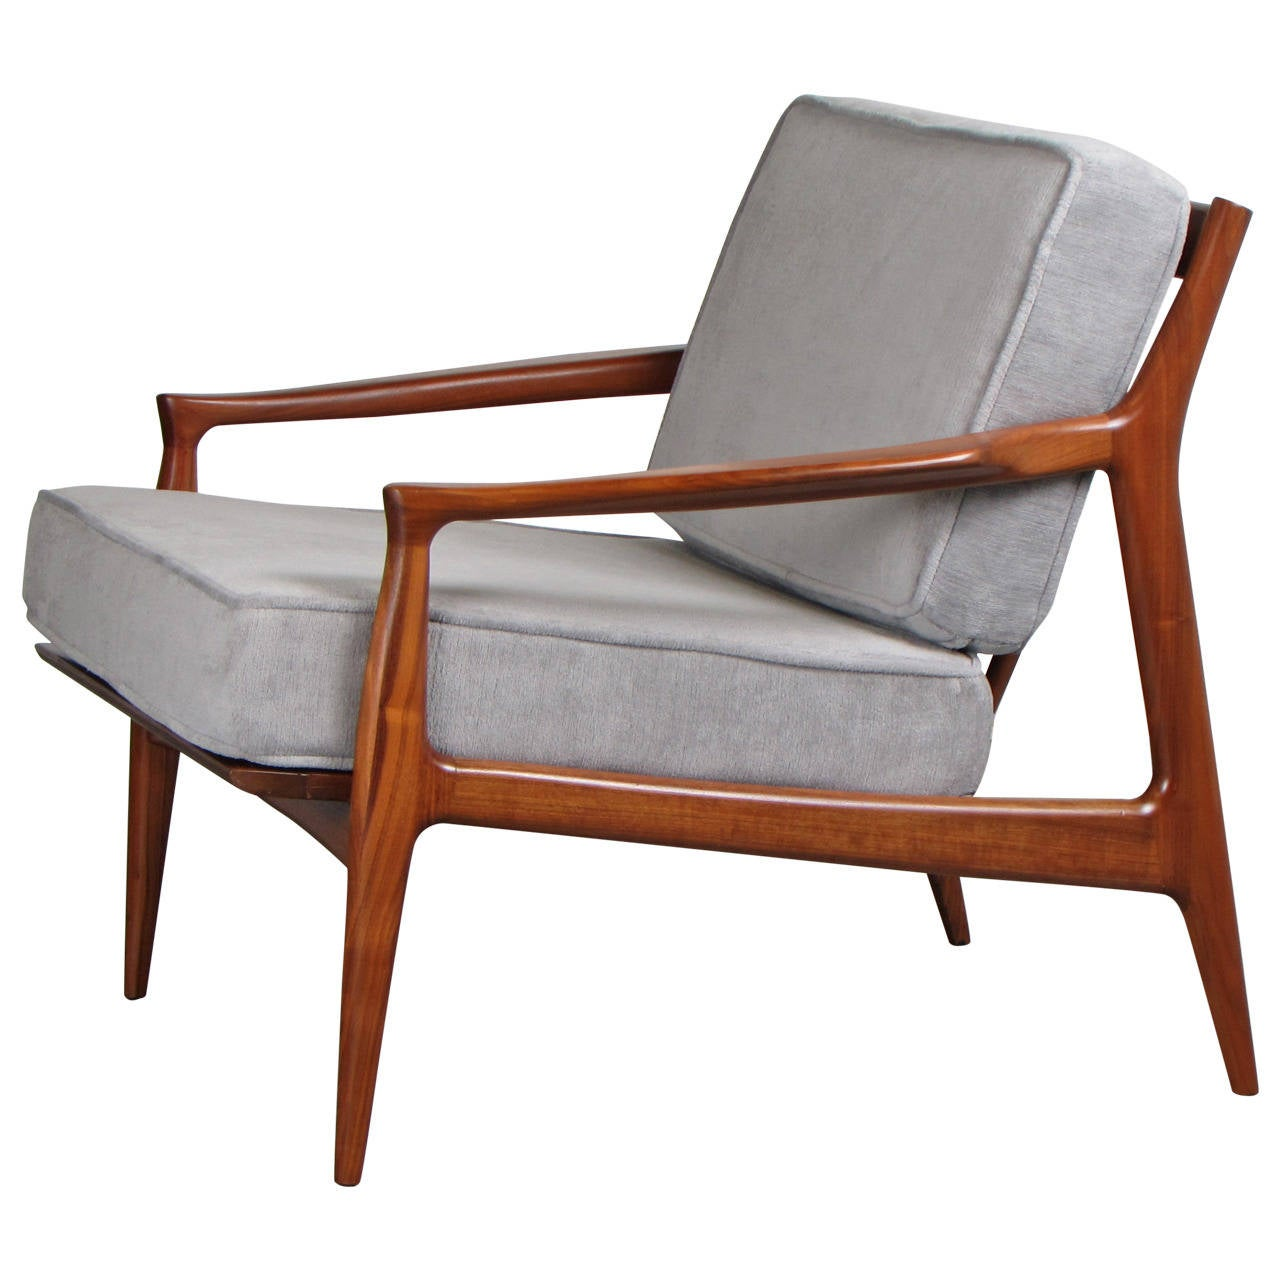 sculptural danish modern teak lounge chair by ib kofod. Black Bedroom Furniture Sets. Home Design Ideas